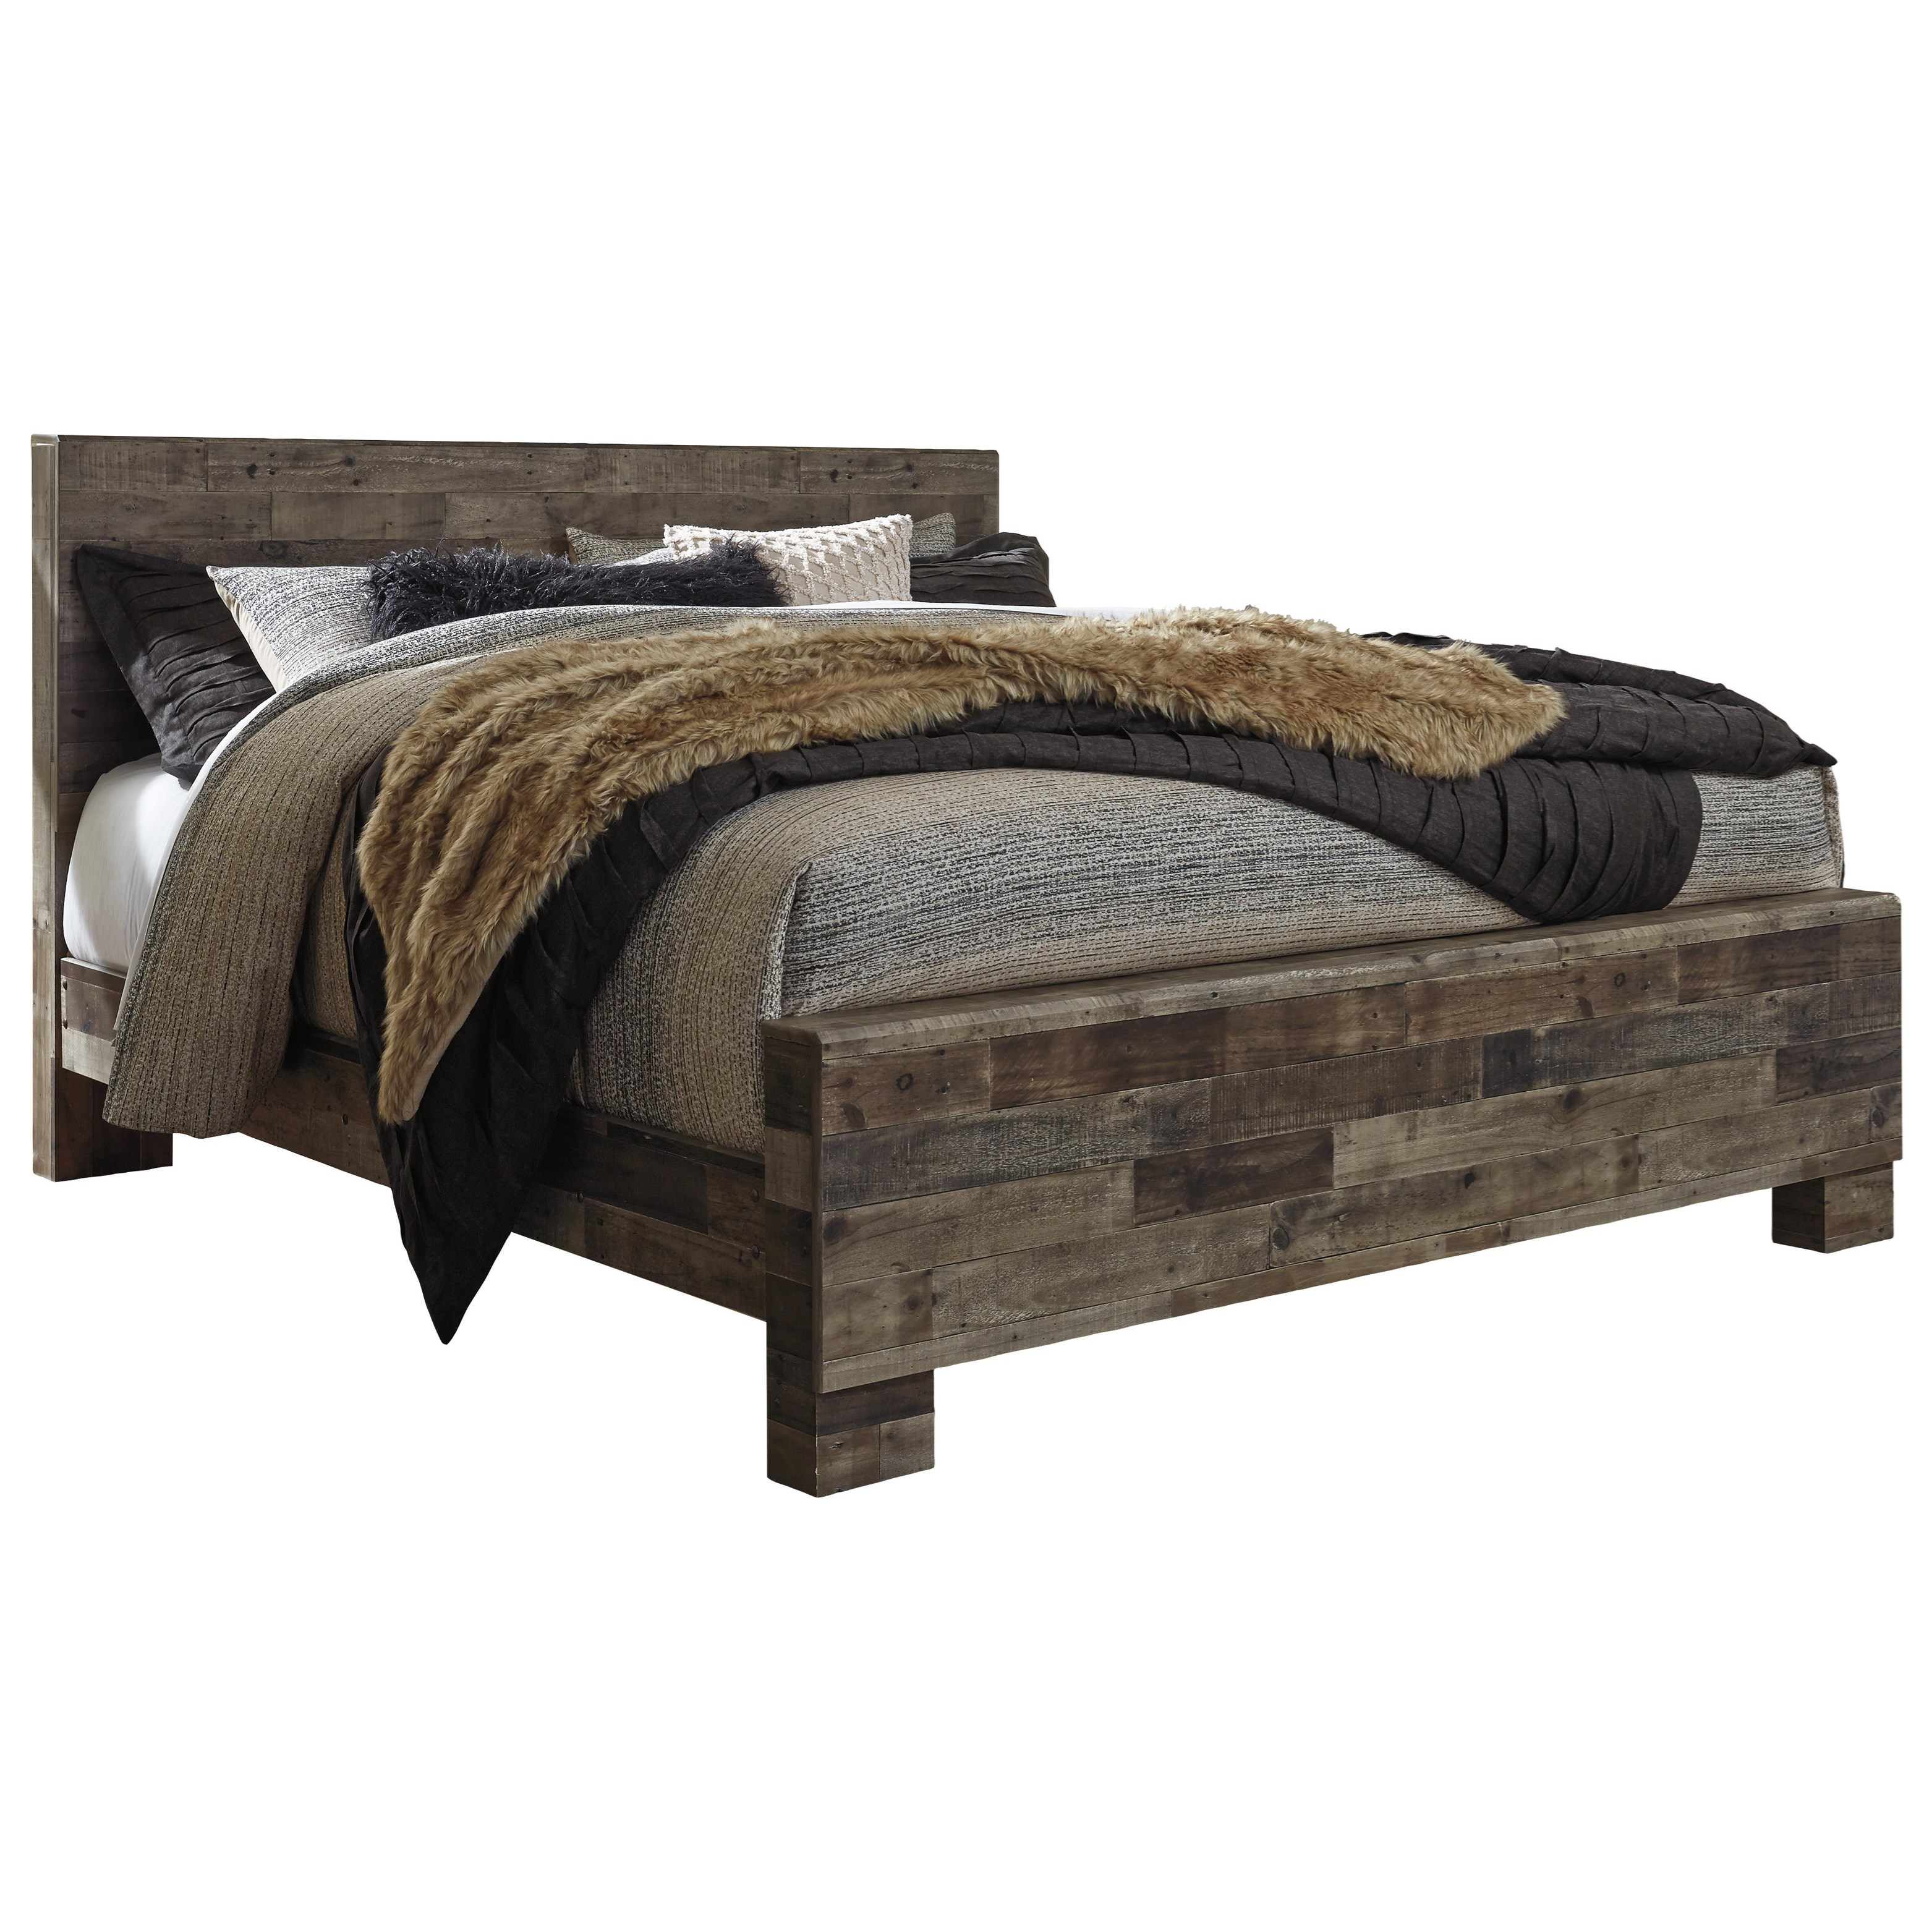 Derekson King Panel Bed by Benchcraft at Northeast Factory Direct